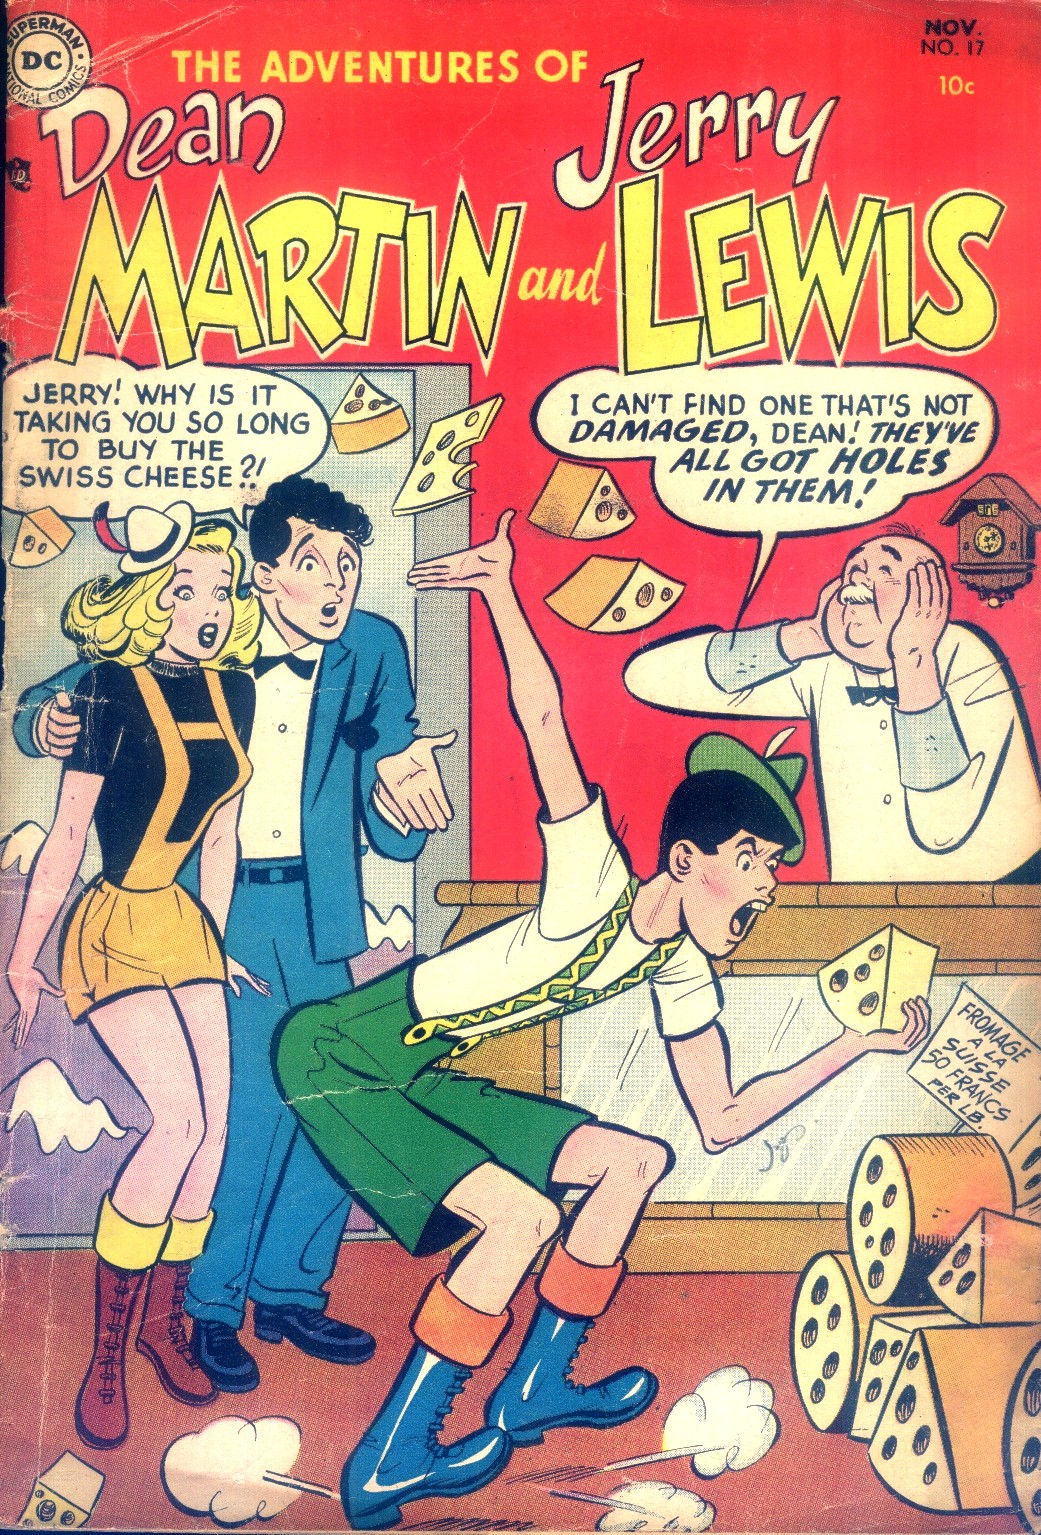 The Adventures of Dean Martin and Jerry Lewis 17 Page 1